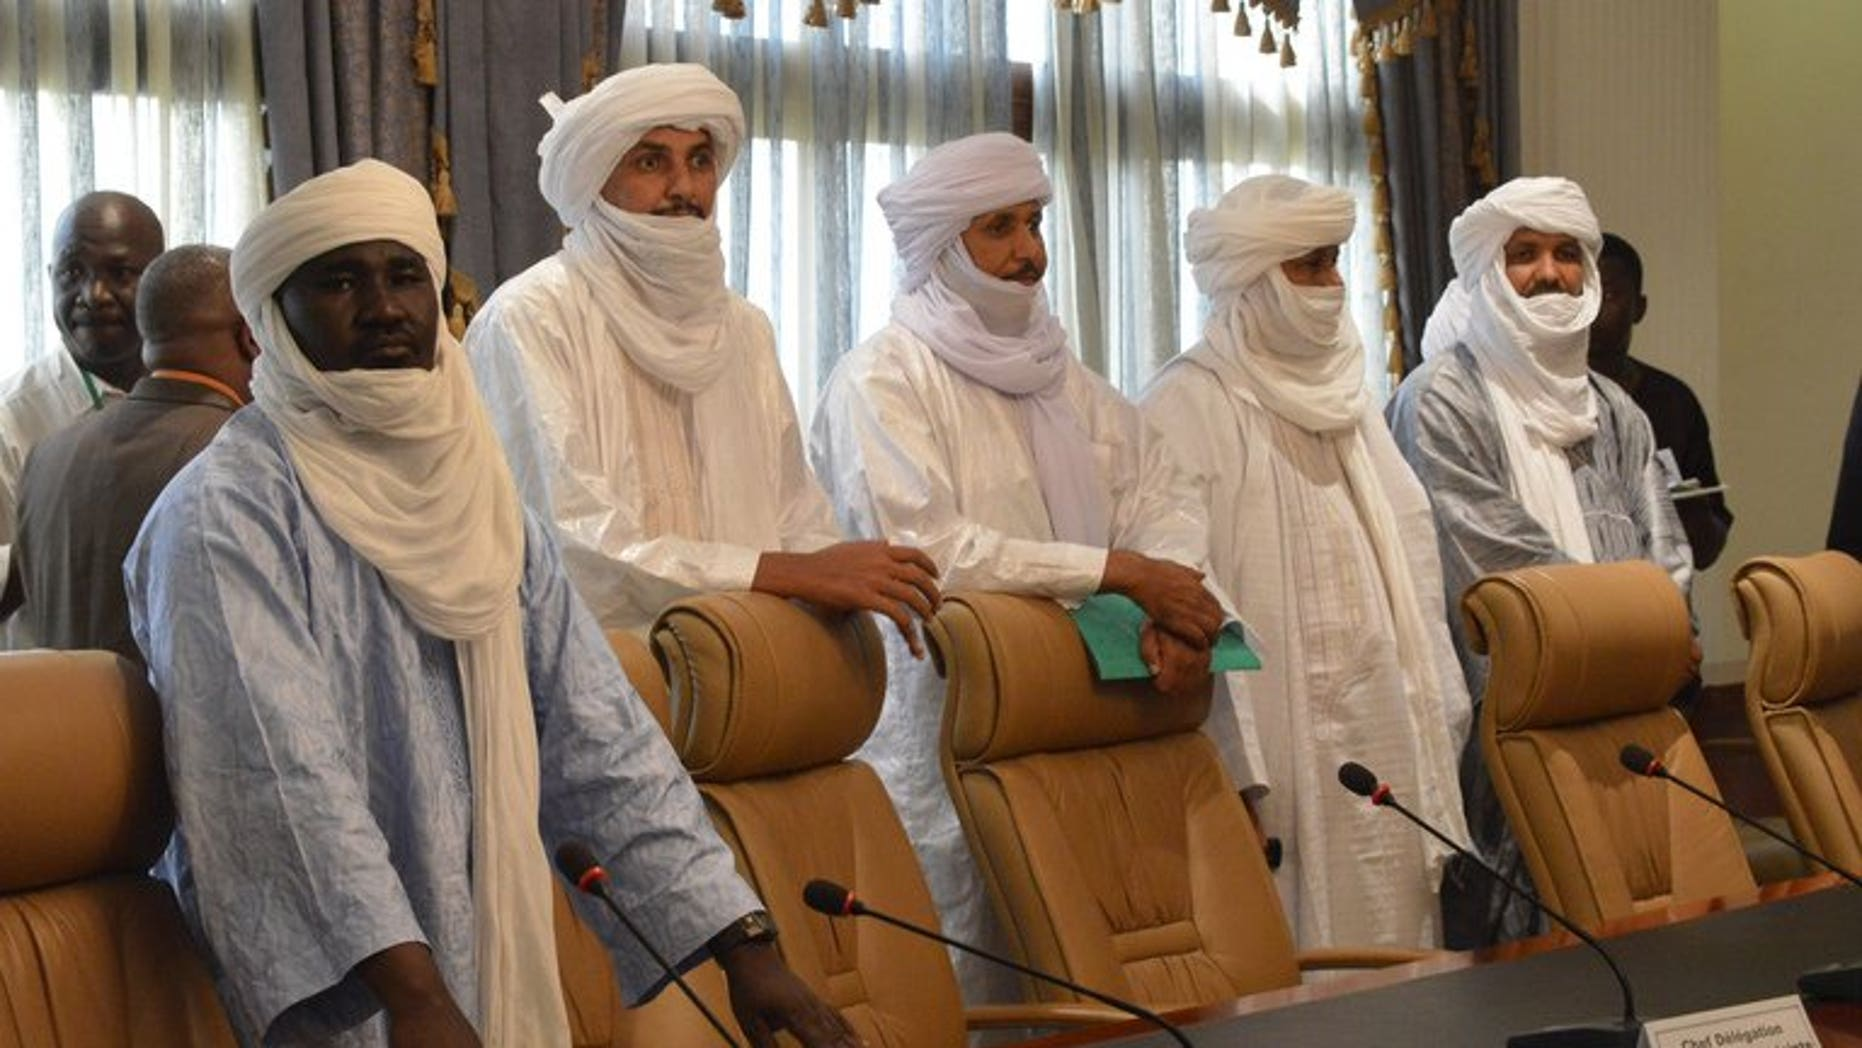 Tuareg delegates arrive to meet a Mali government delegation in Ougadougou, Burkina Faso, last week. Bamako will sign a deal with Tuareg rebels on Tuesday that is expected to pave the way for nationwide polls next month, a Mali government envoy told AFP.